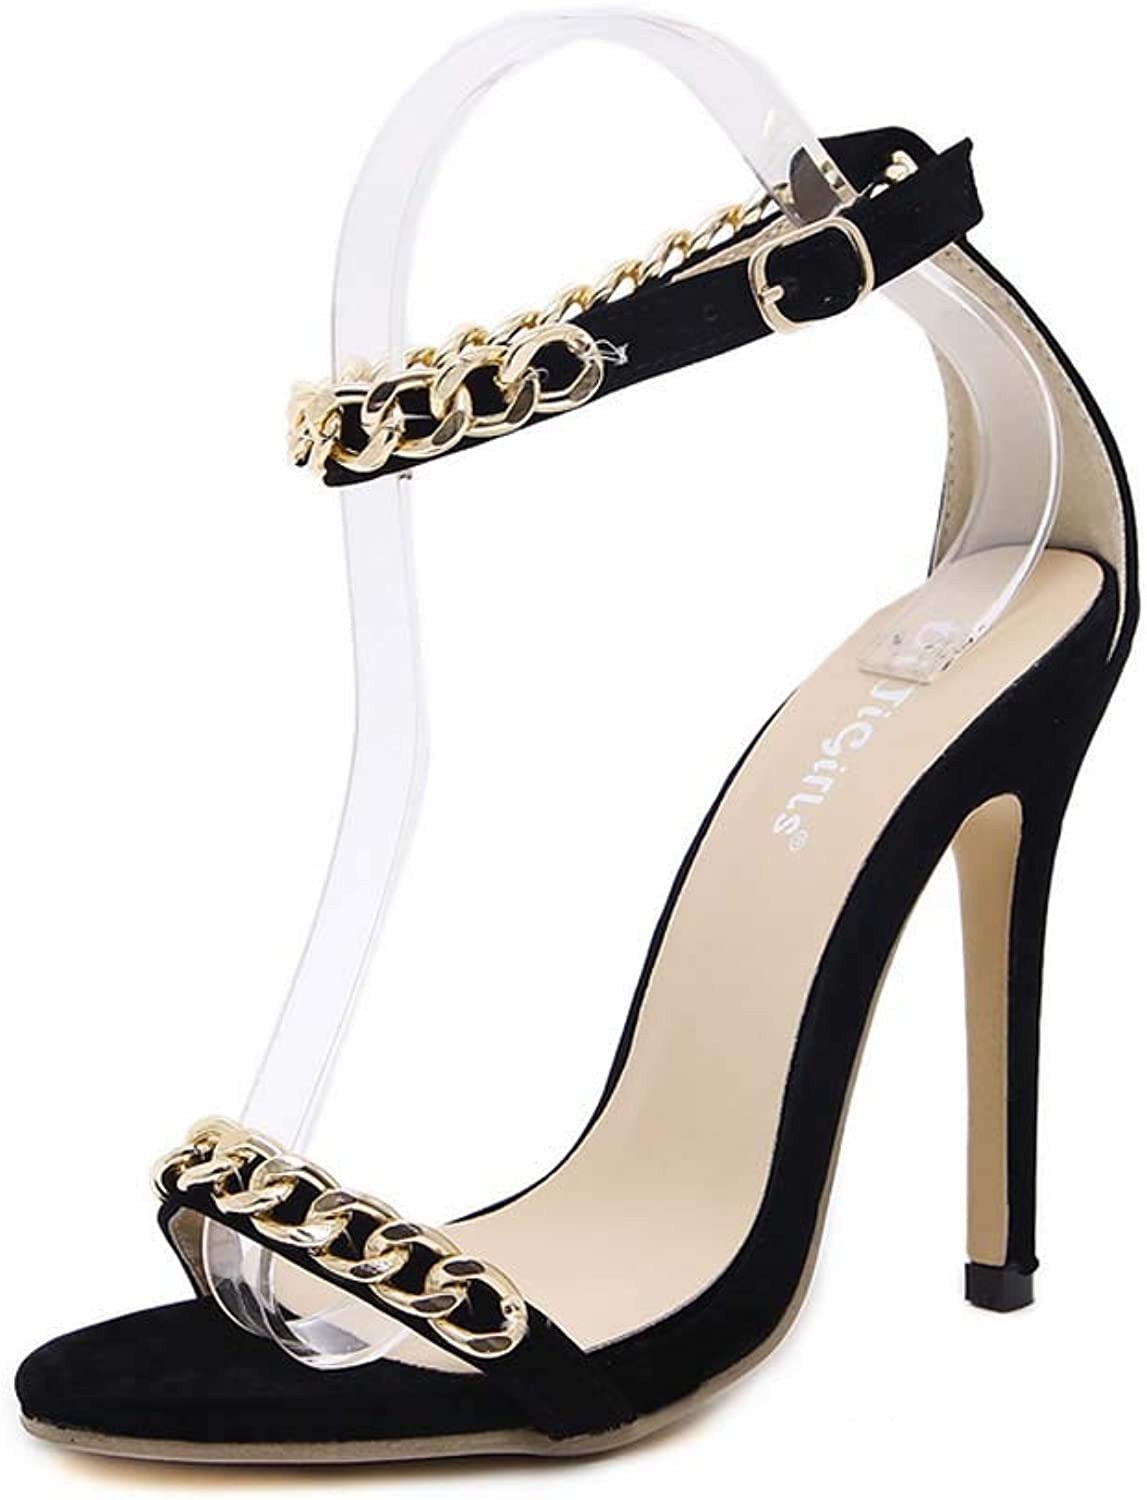 Women Ankle Strap Sandals,Stiletto Heel Open-Toe High Heels,Buckle Prom Party shoes